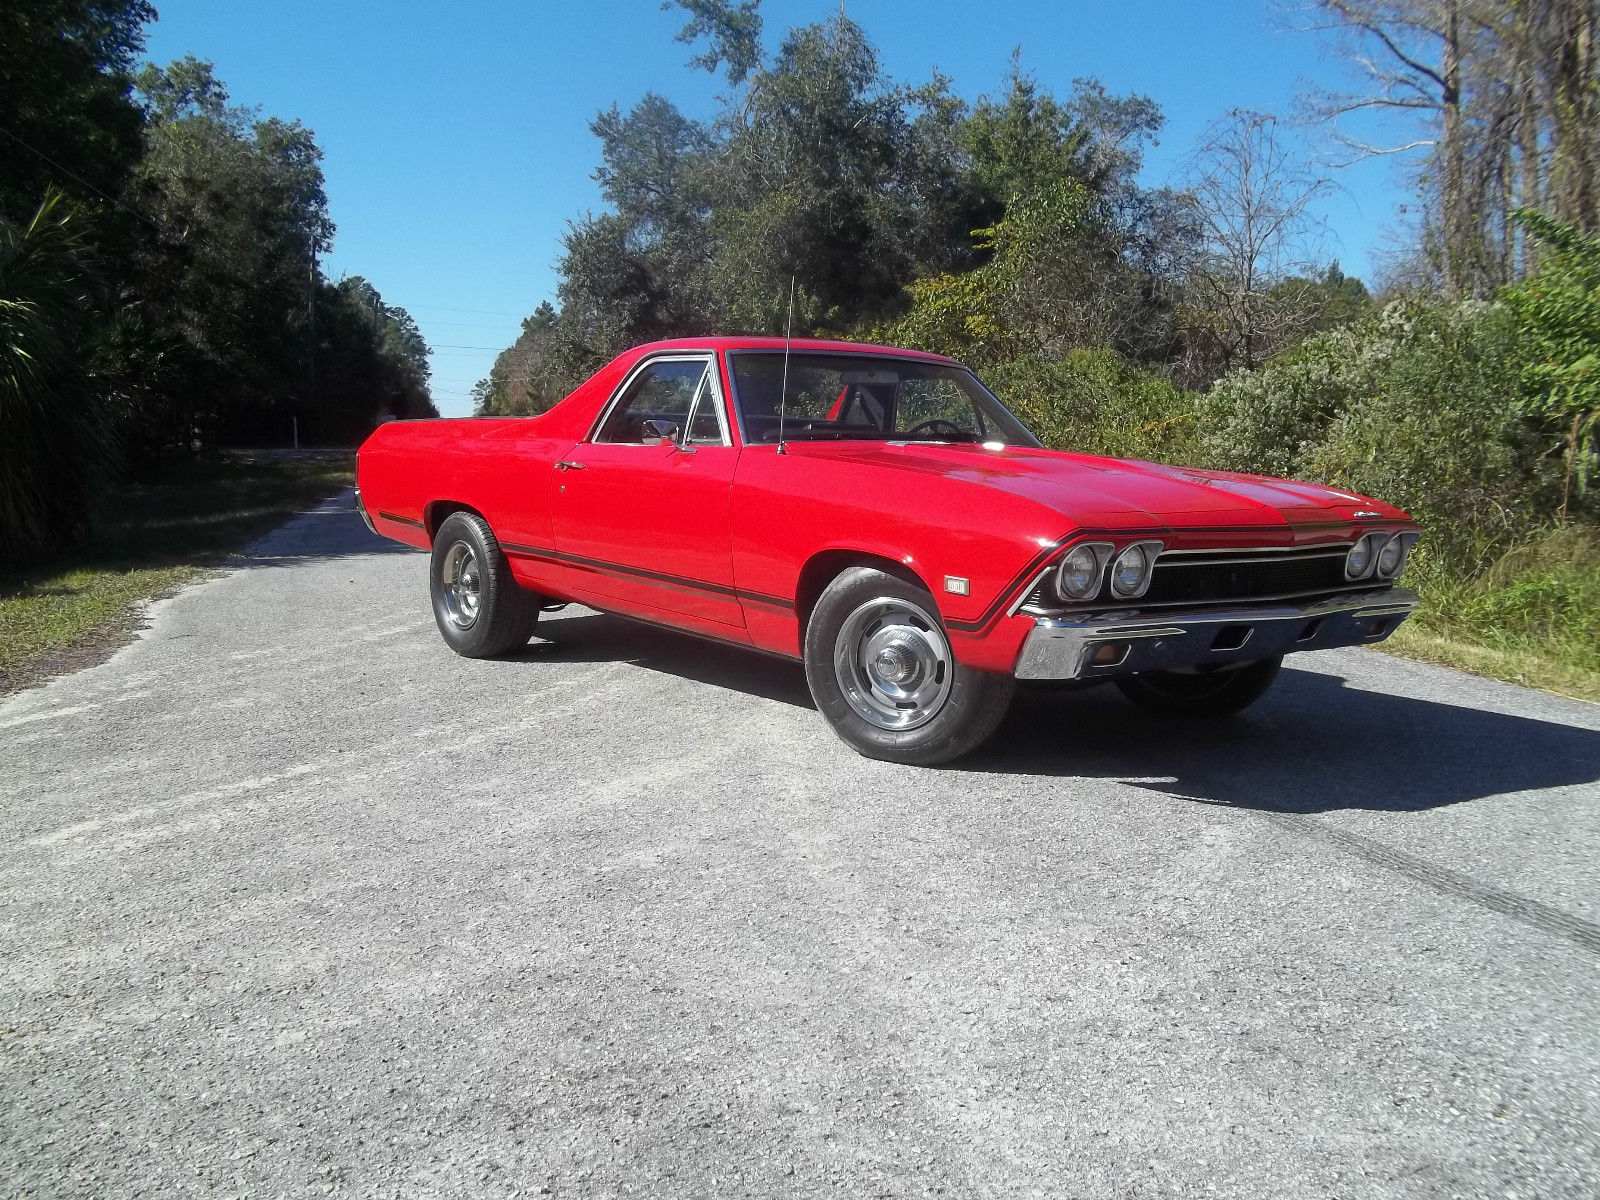 1968 Chevy El Camino Ss Trim Torch Red Florida Car Runs Great For Chevrolet